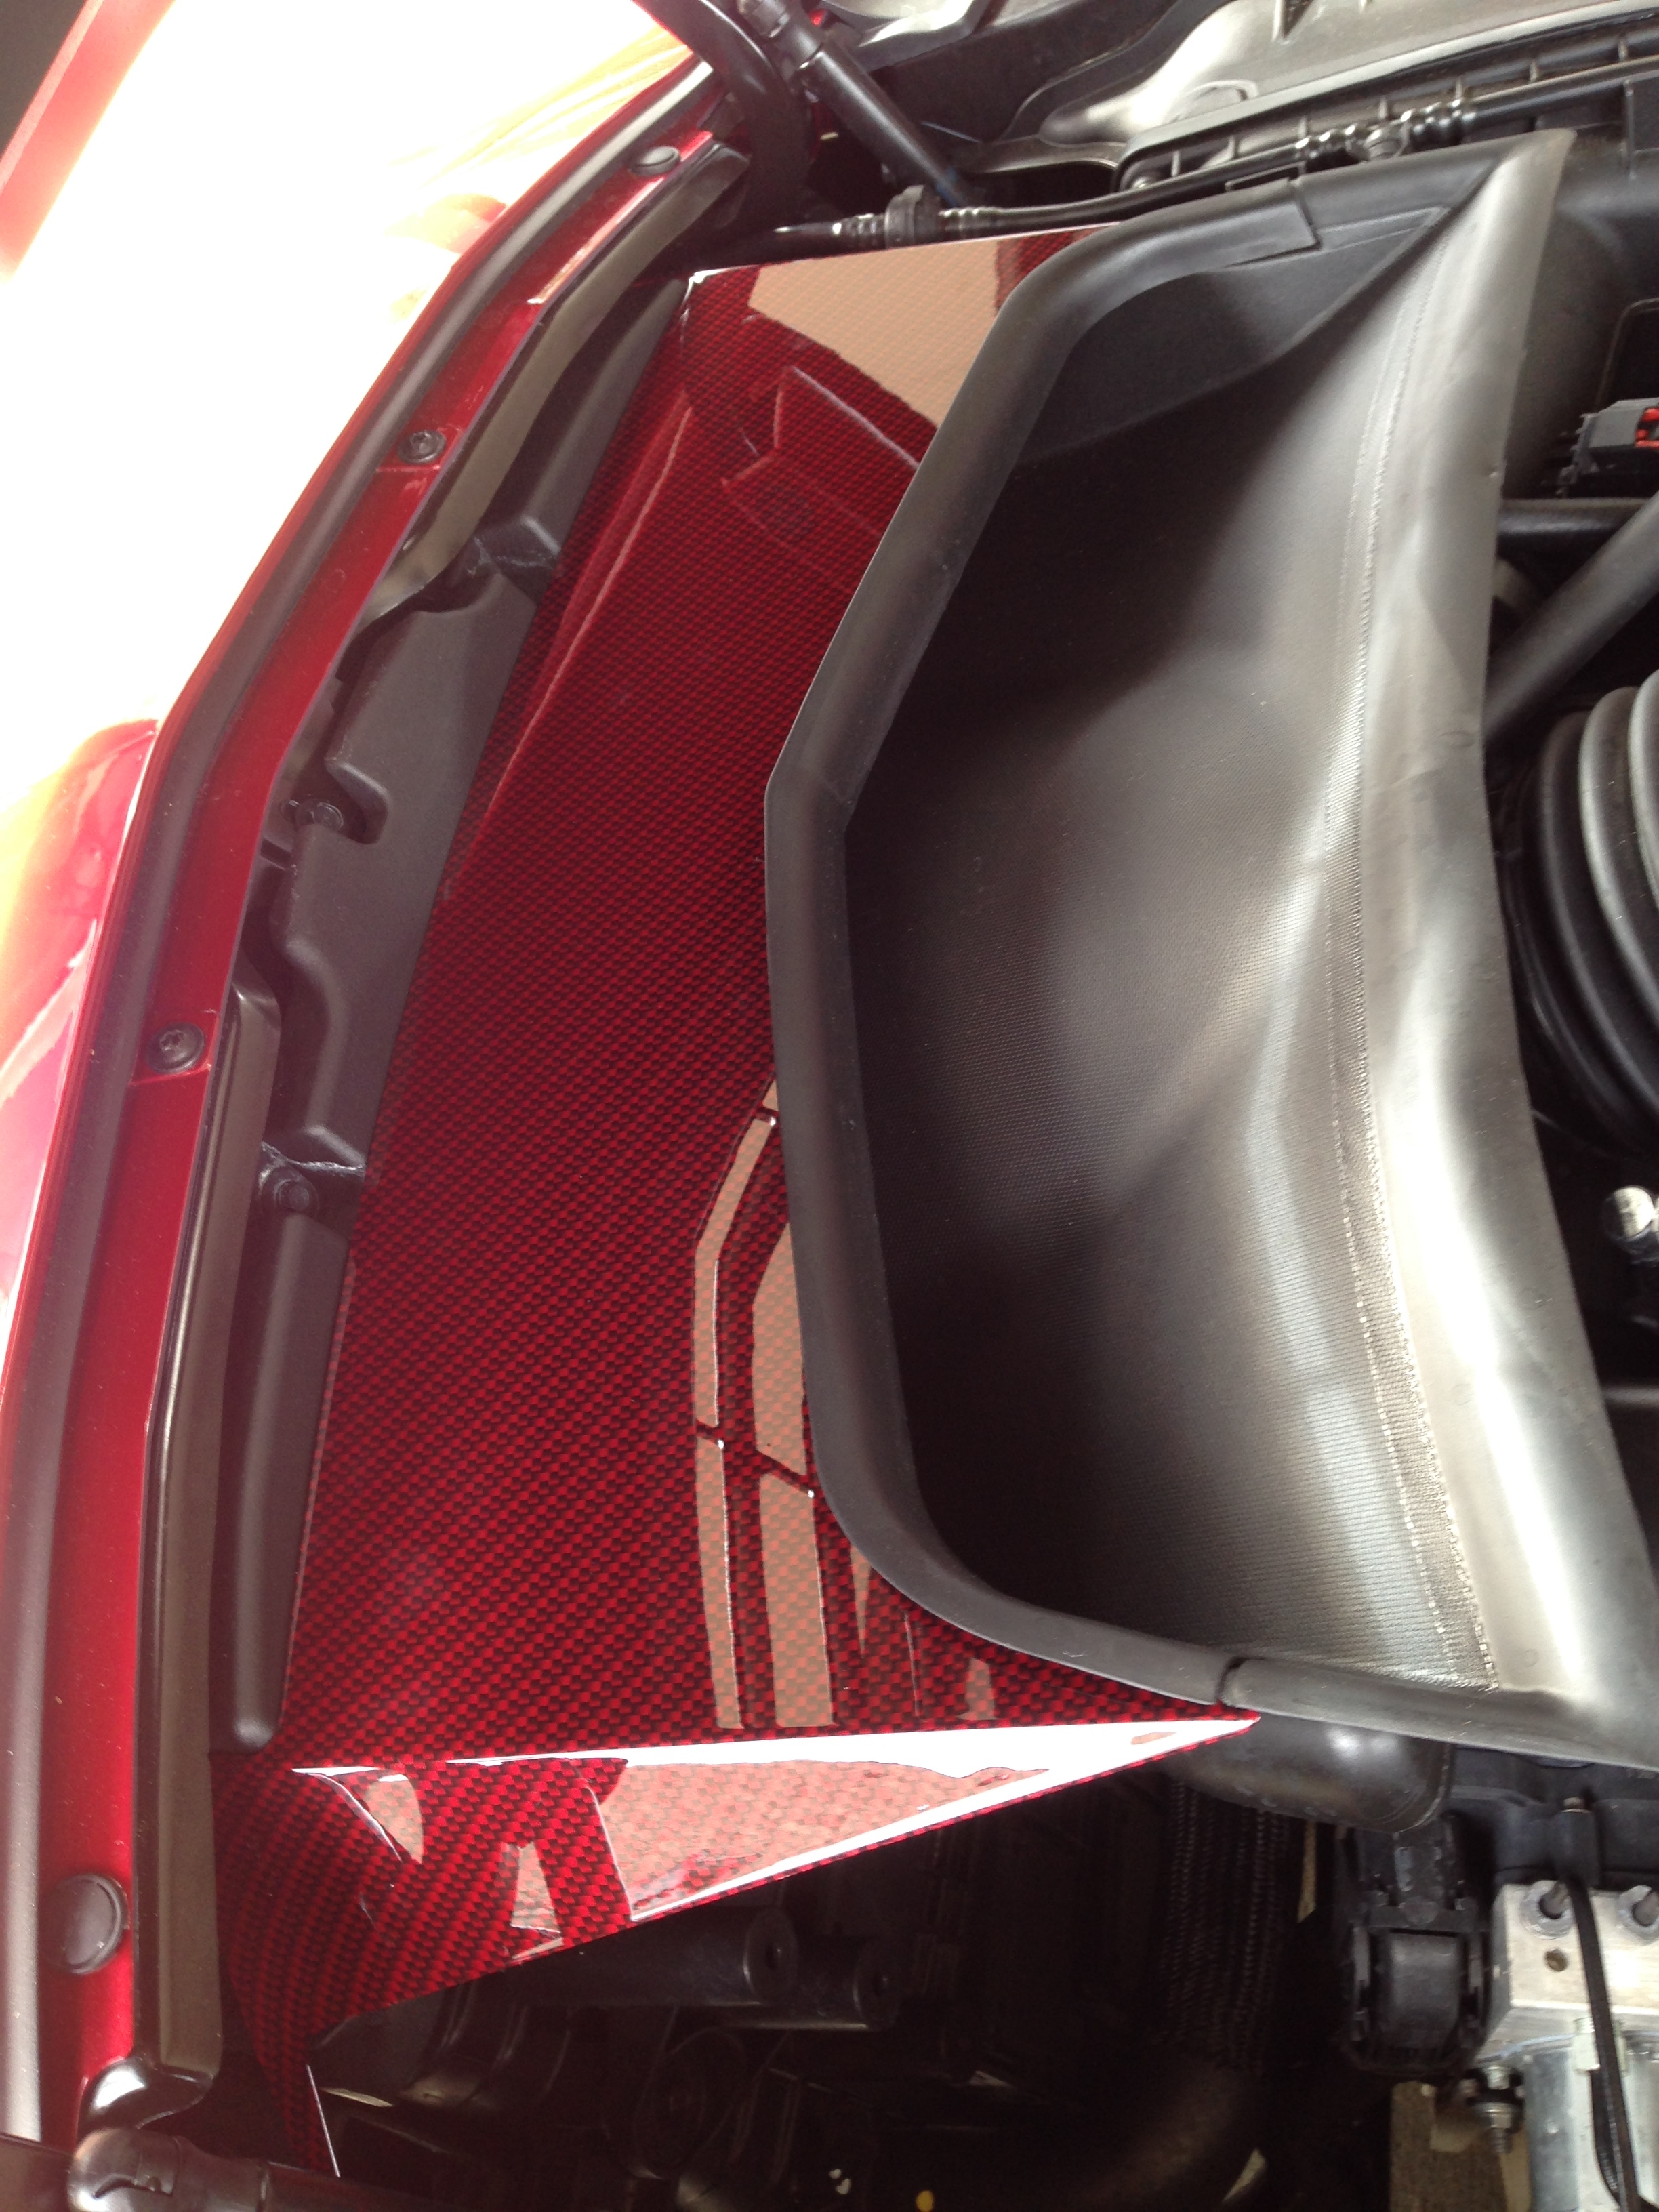 C7 Corvette, Custom HydroCarboned, Painted, Air Tube Cover, Direct Replacement